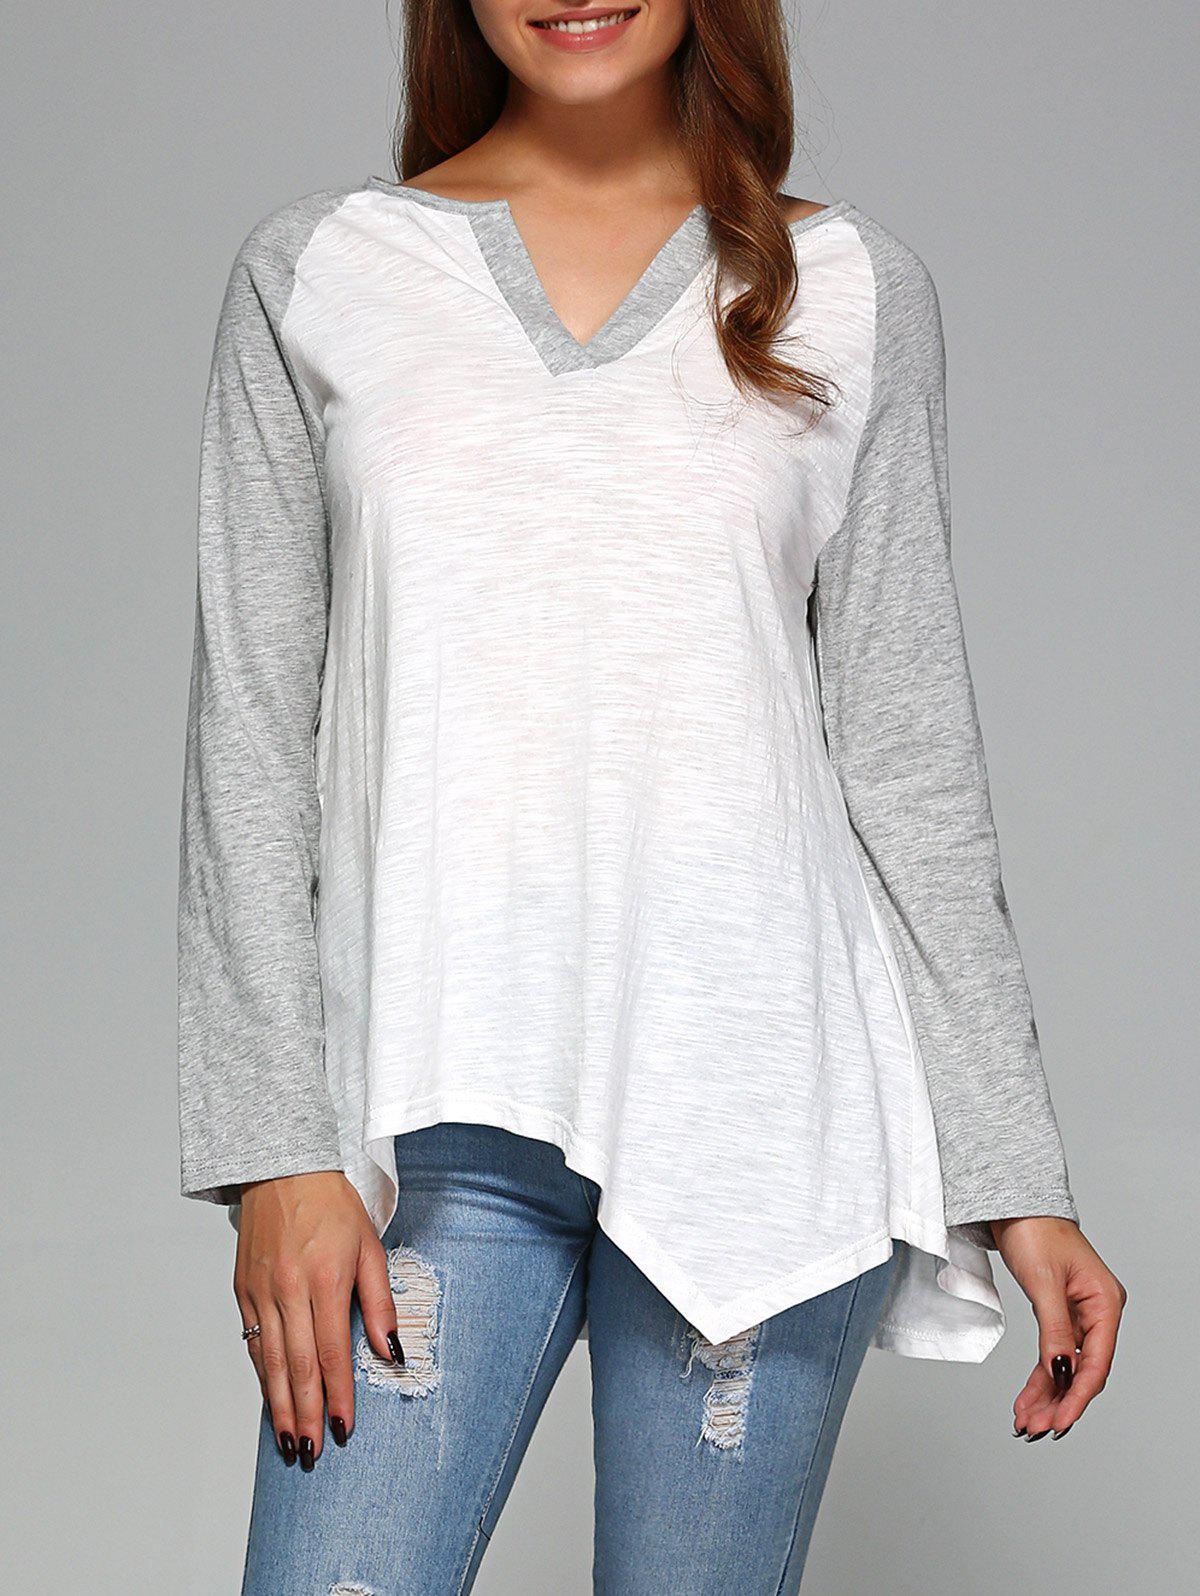 Raglan Sleeve Asymmetrical T-Shirt - GREY/WHITE XL